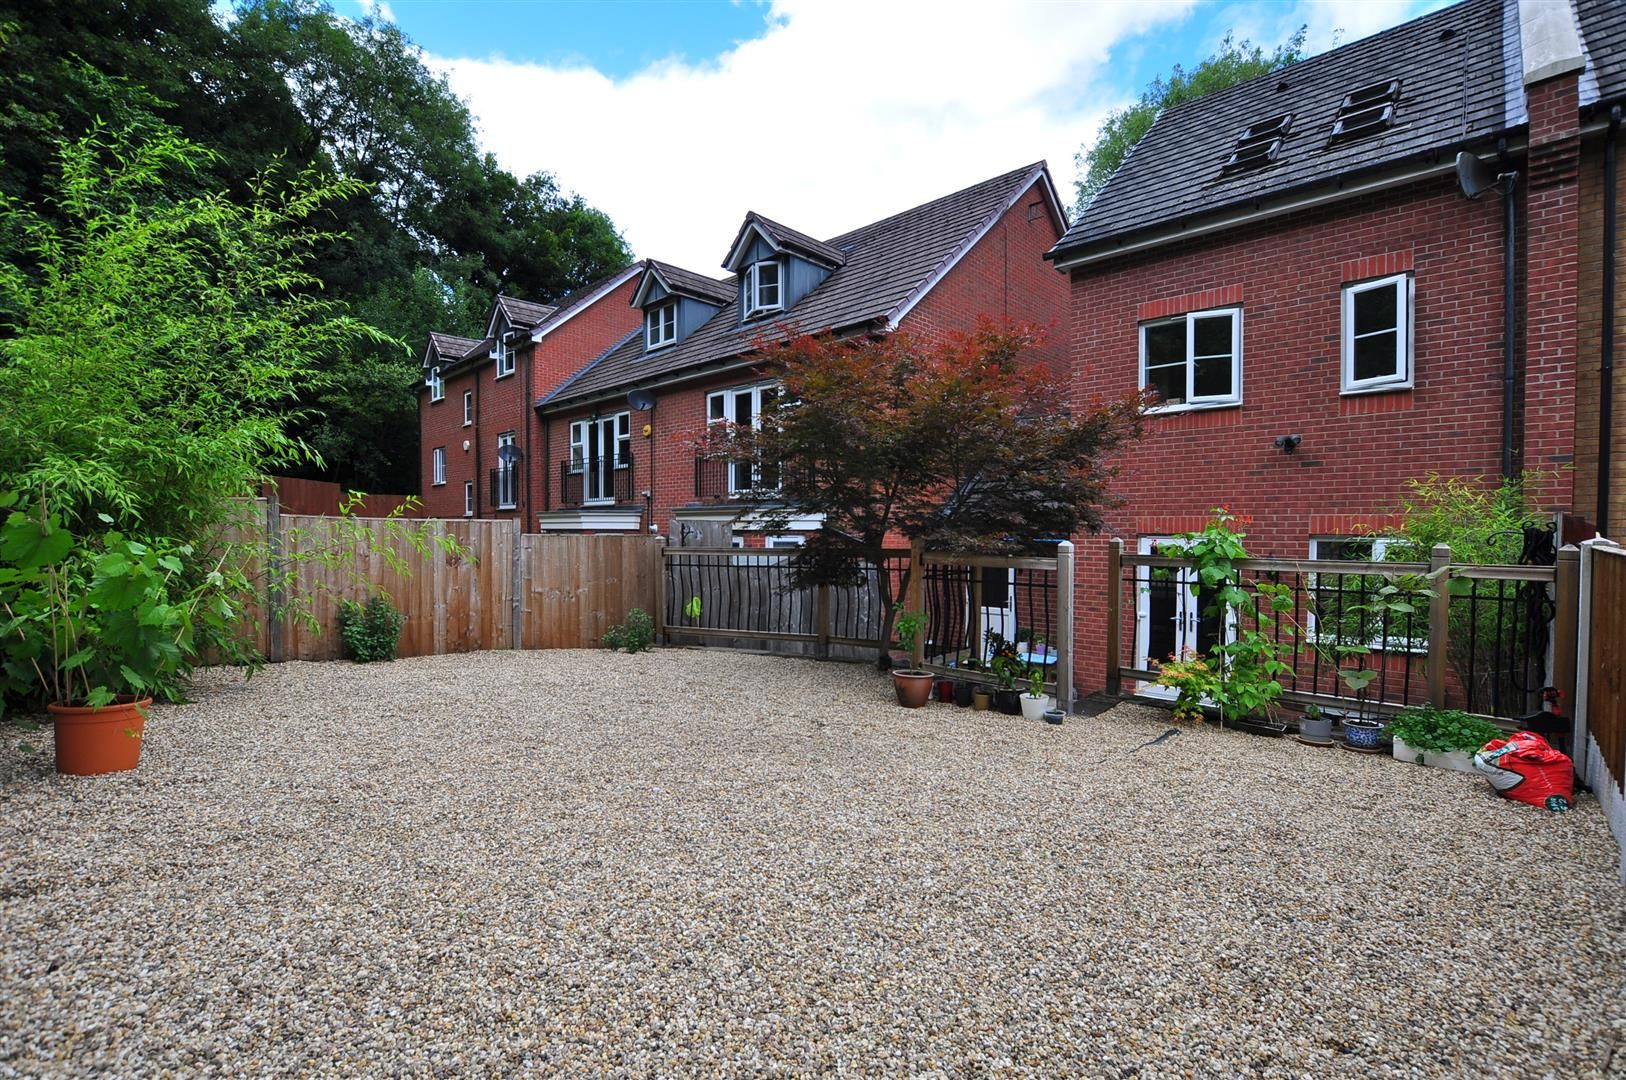 4 bed end-of-terrace for sale 18